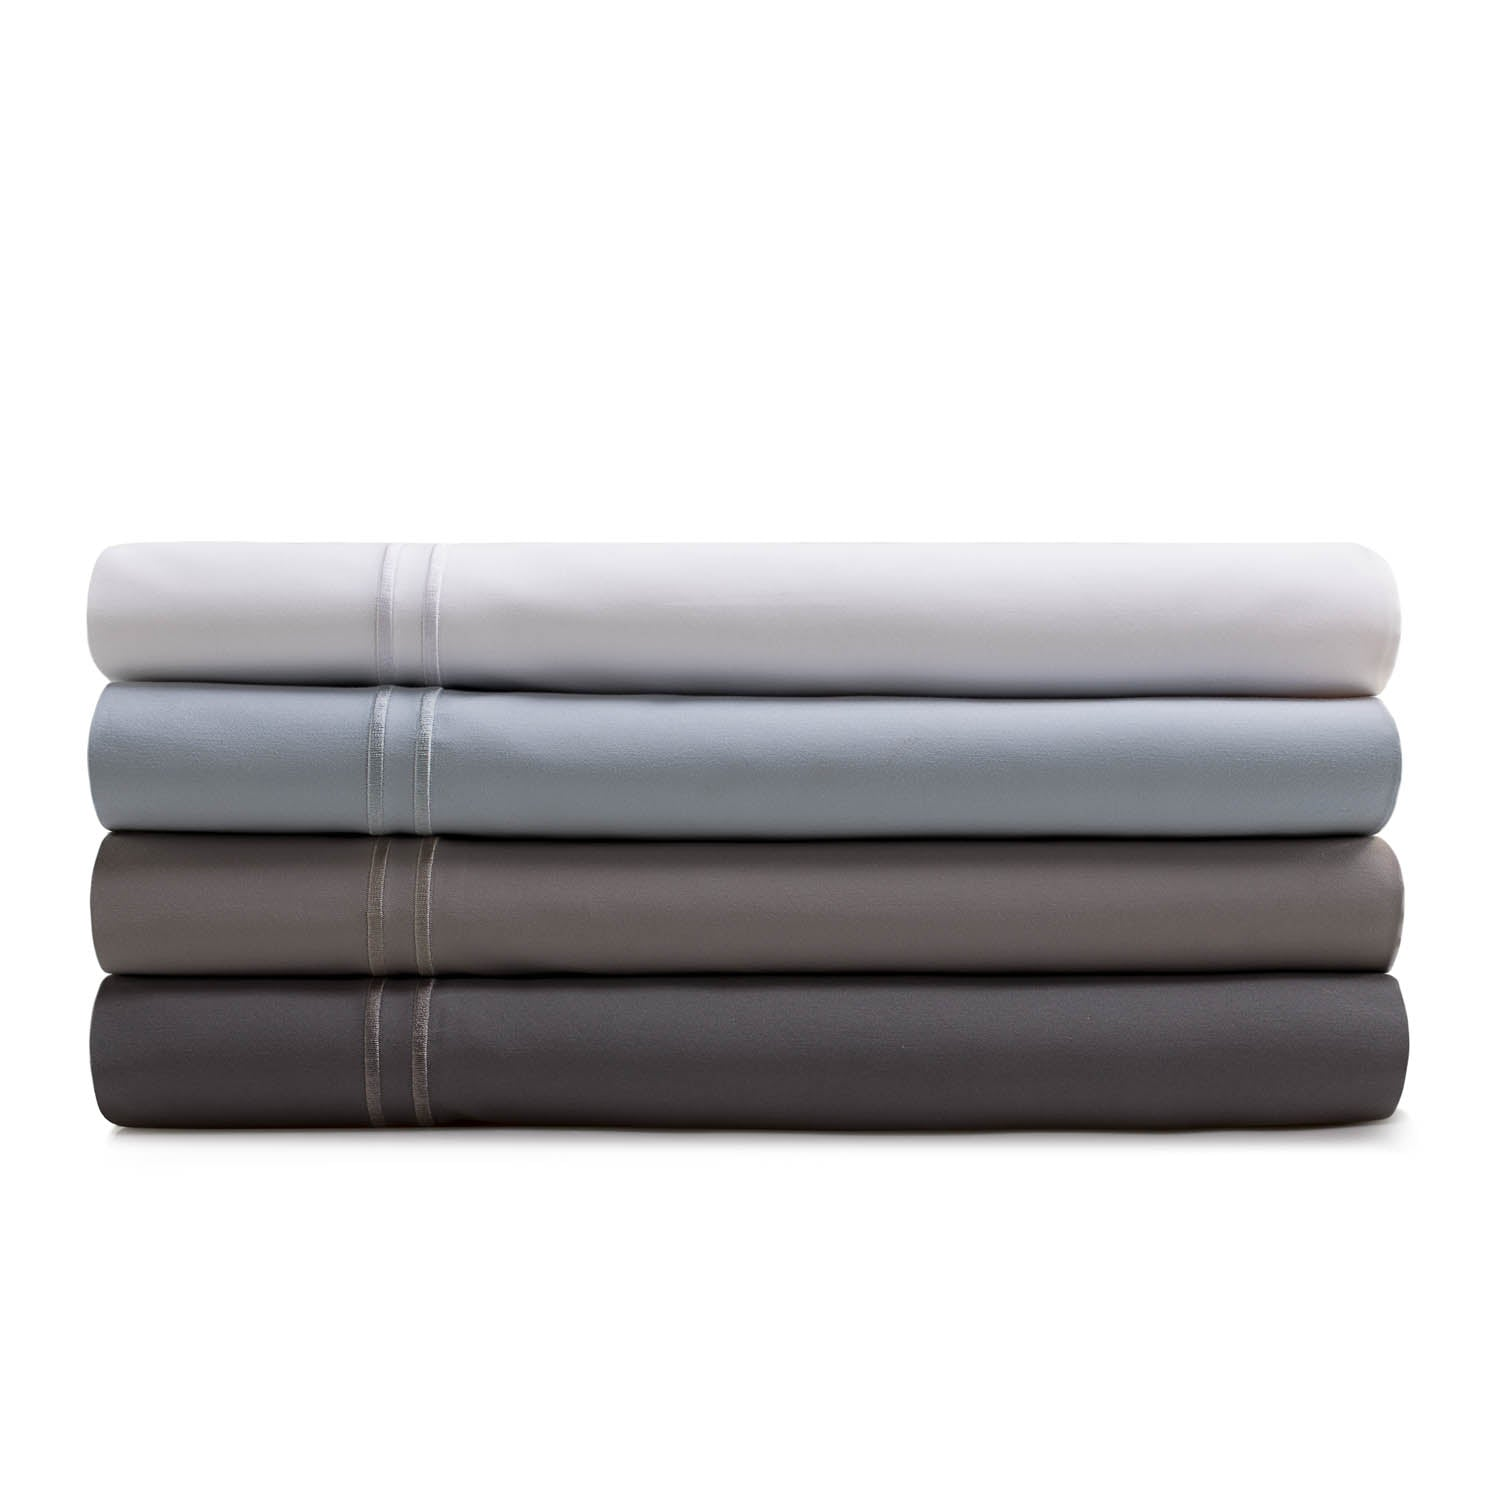 Malouf Woven Supima® Cotton Sheets